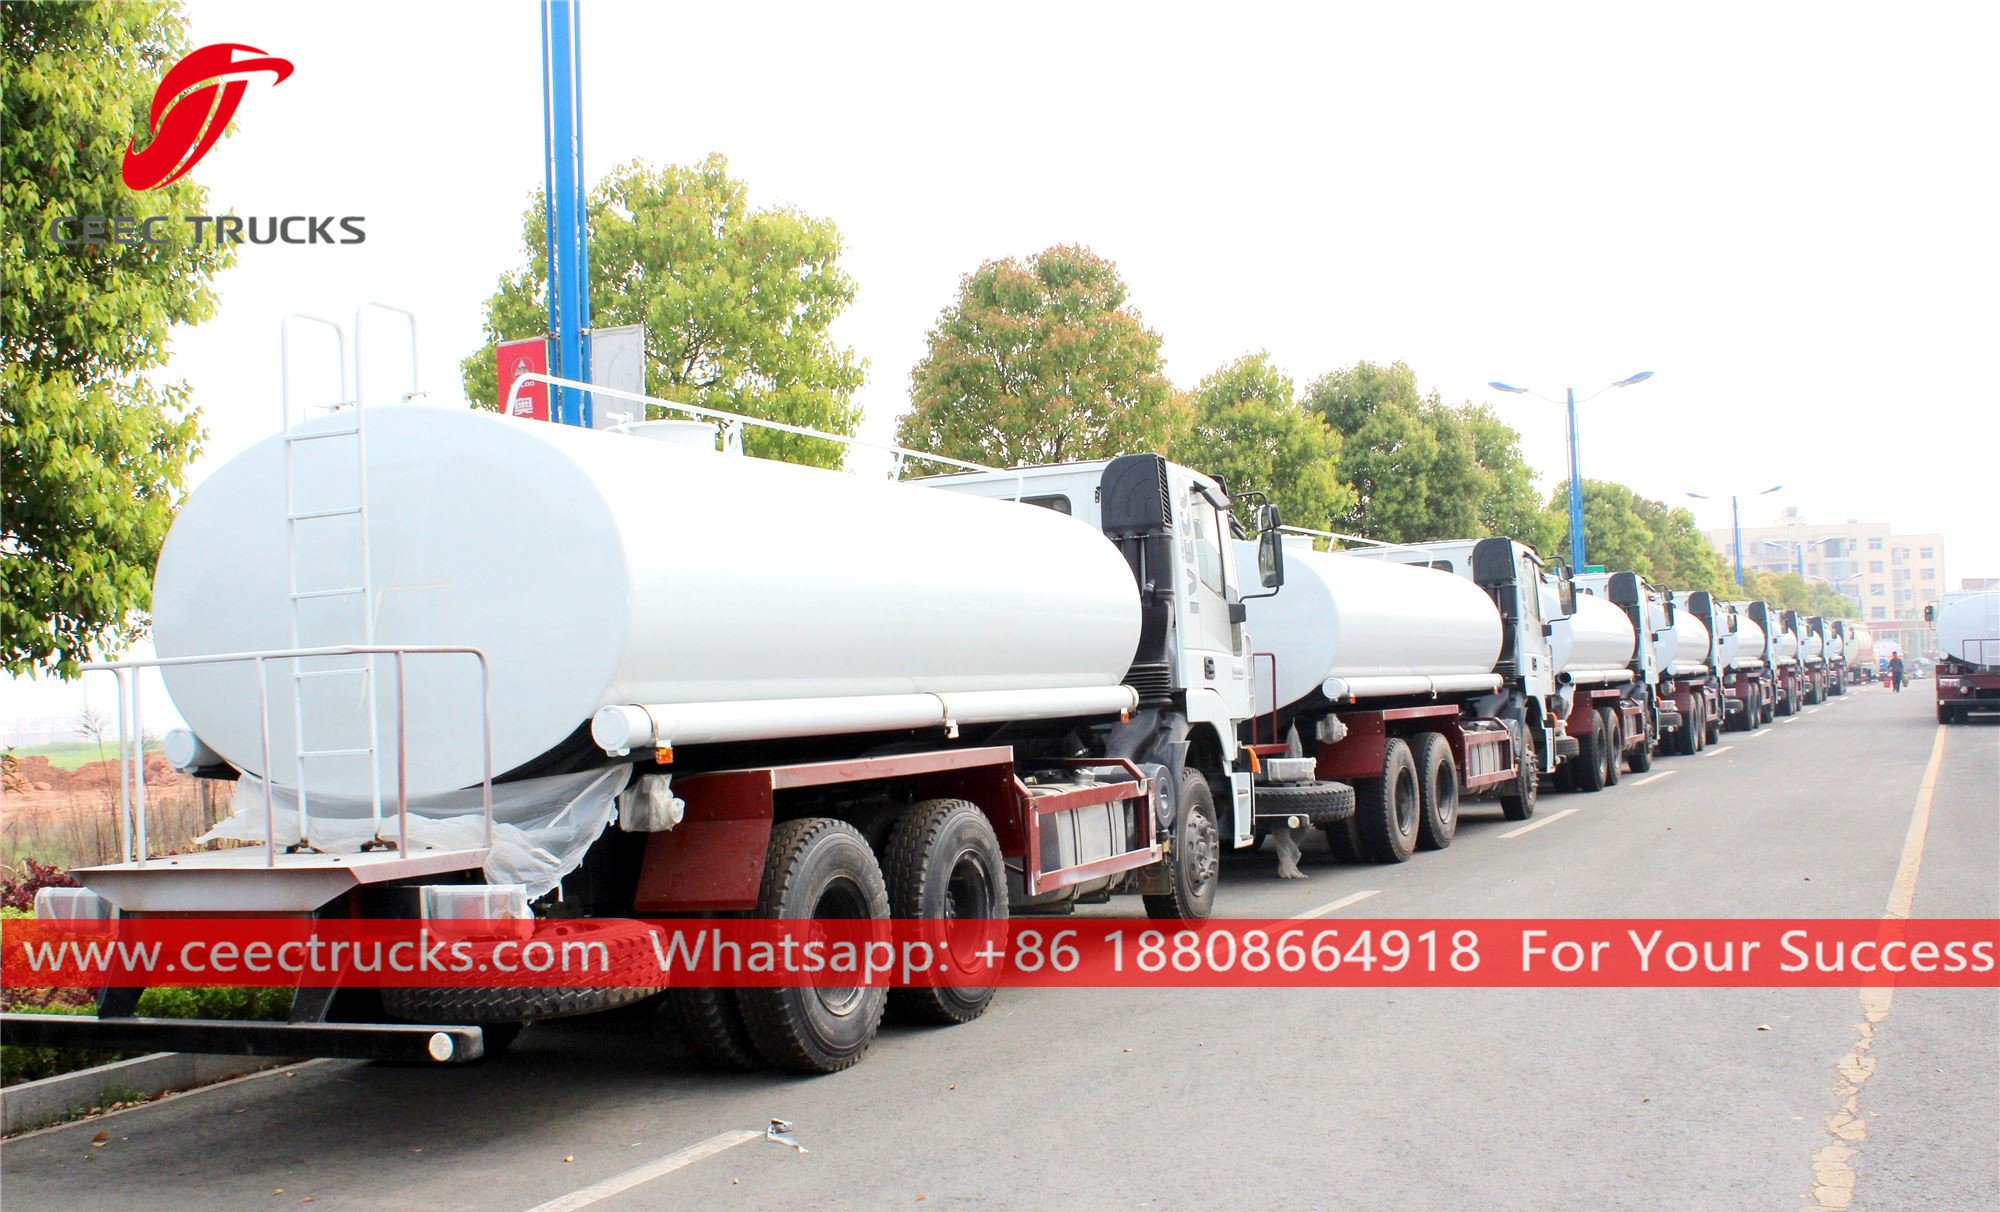 27 units water trucks are ready for delivery